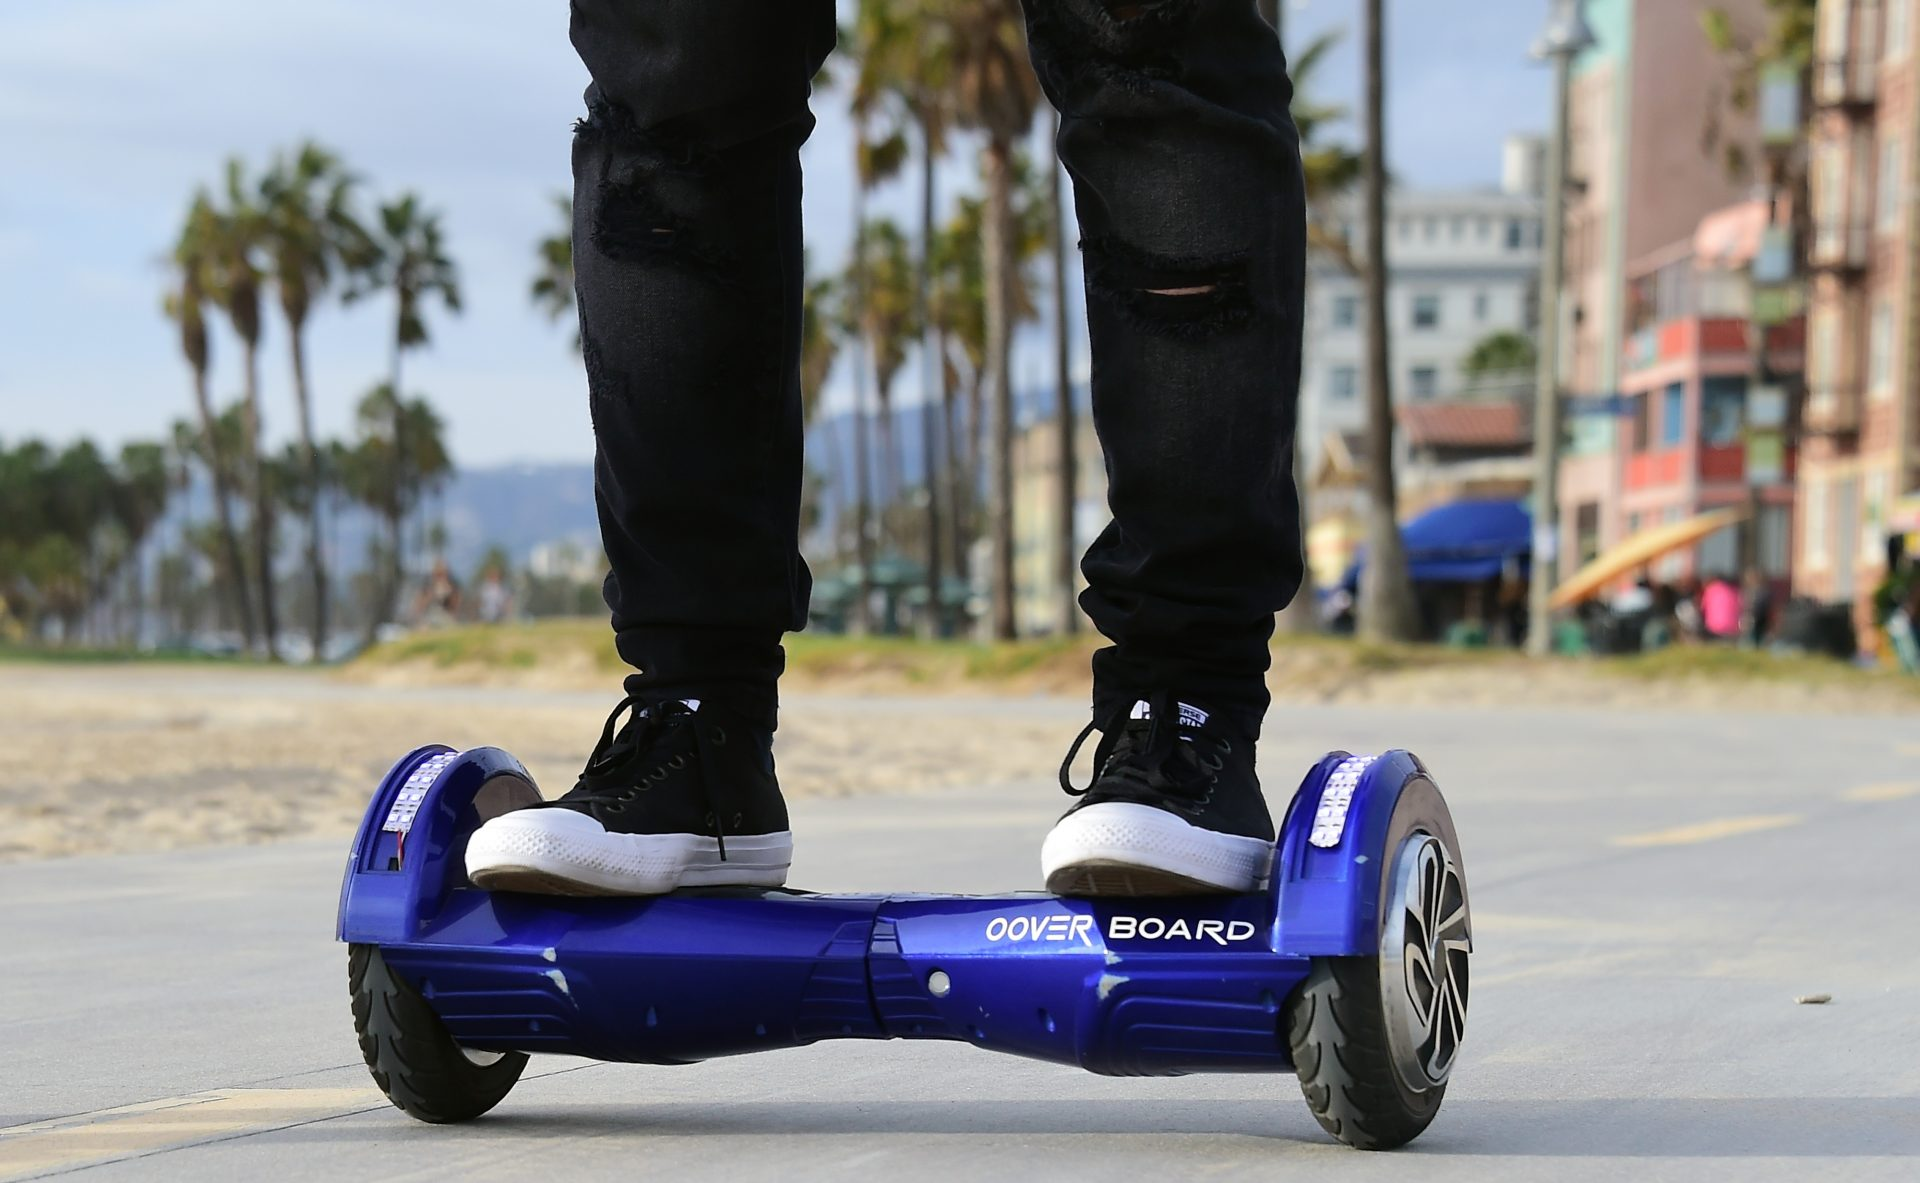 What is Hoverboards